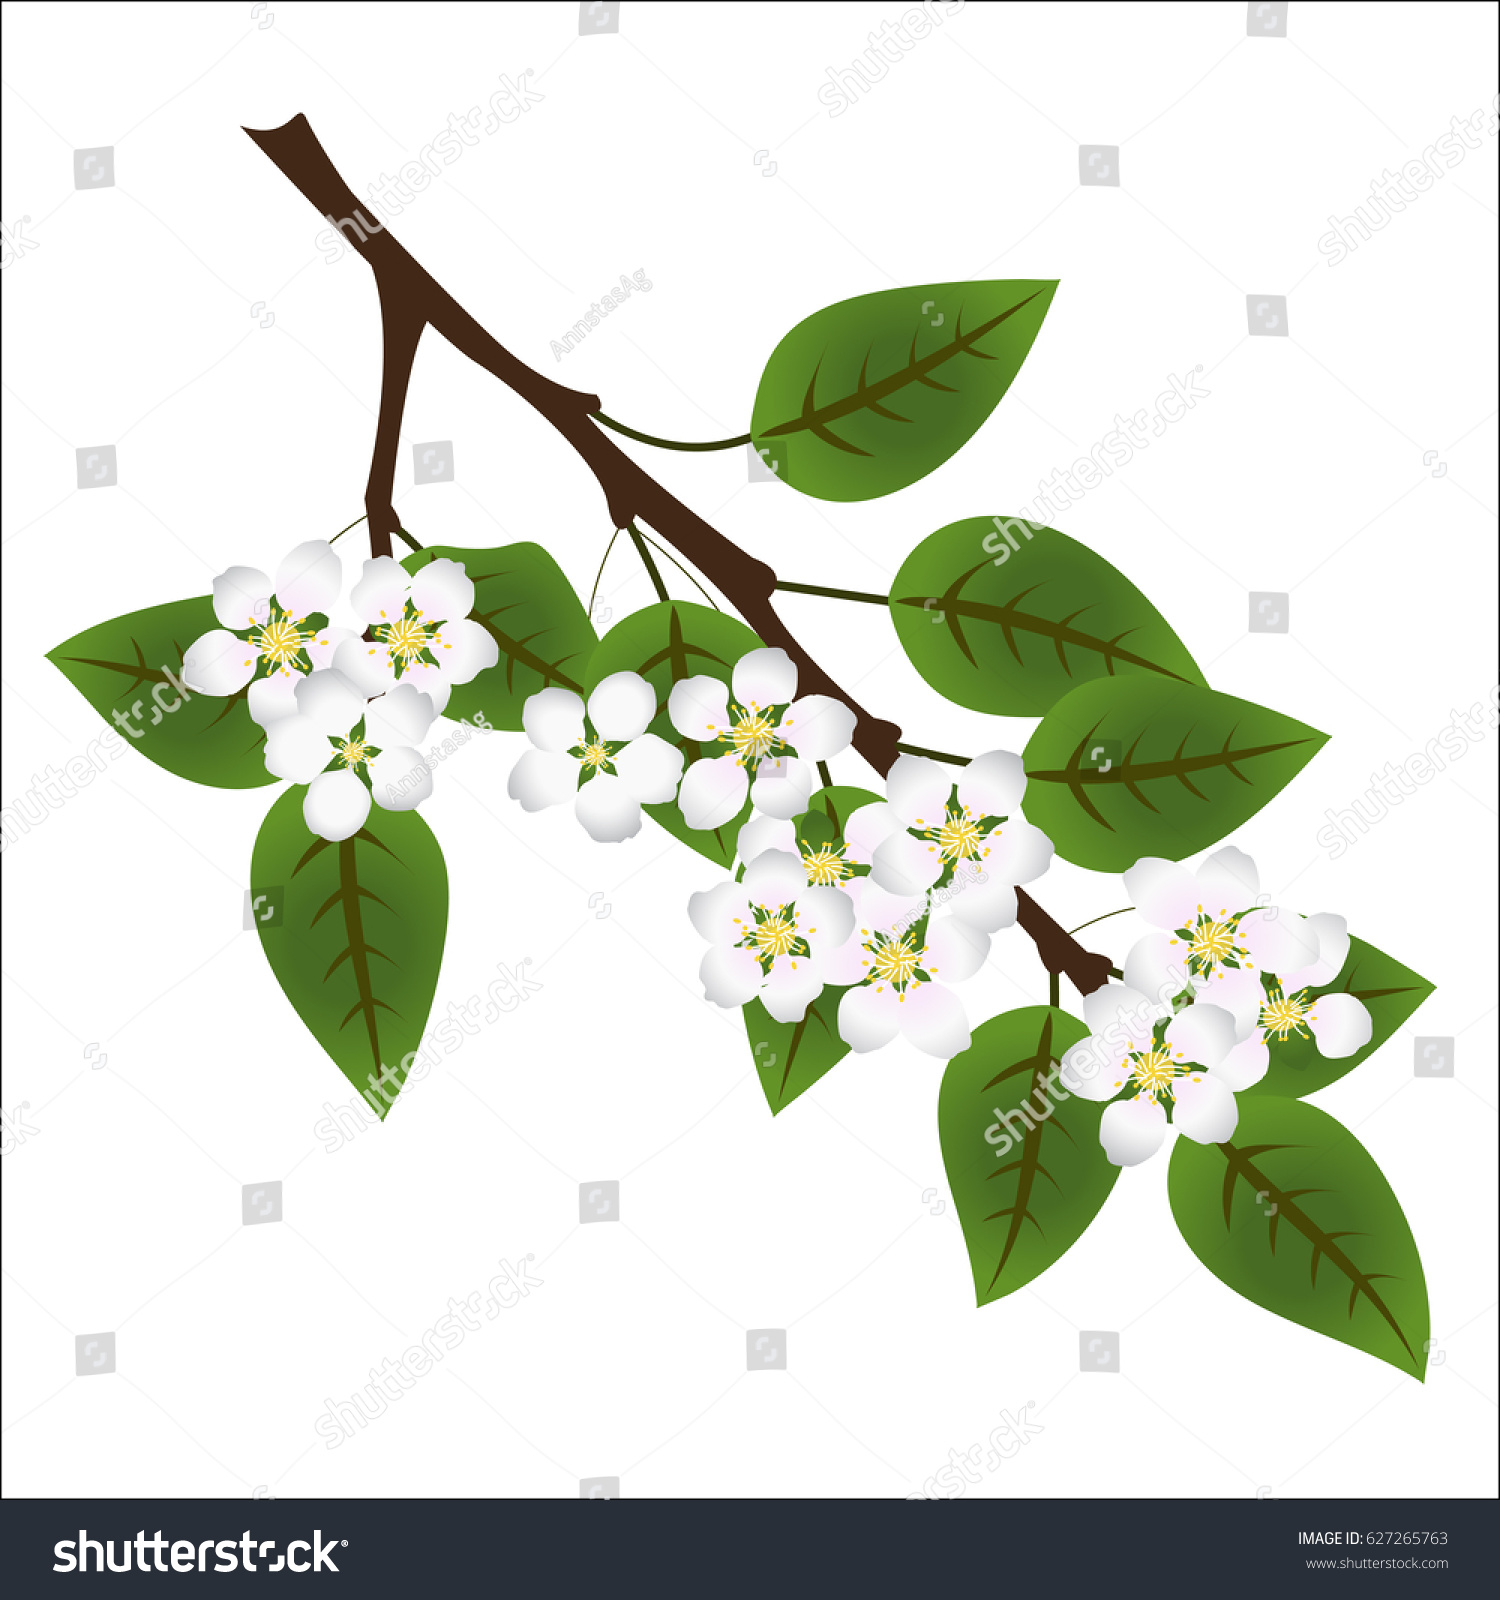 Branch Apple Tree Green Leaves White Stock Vector 627265763